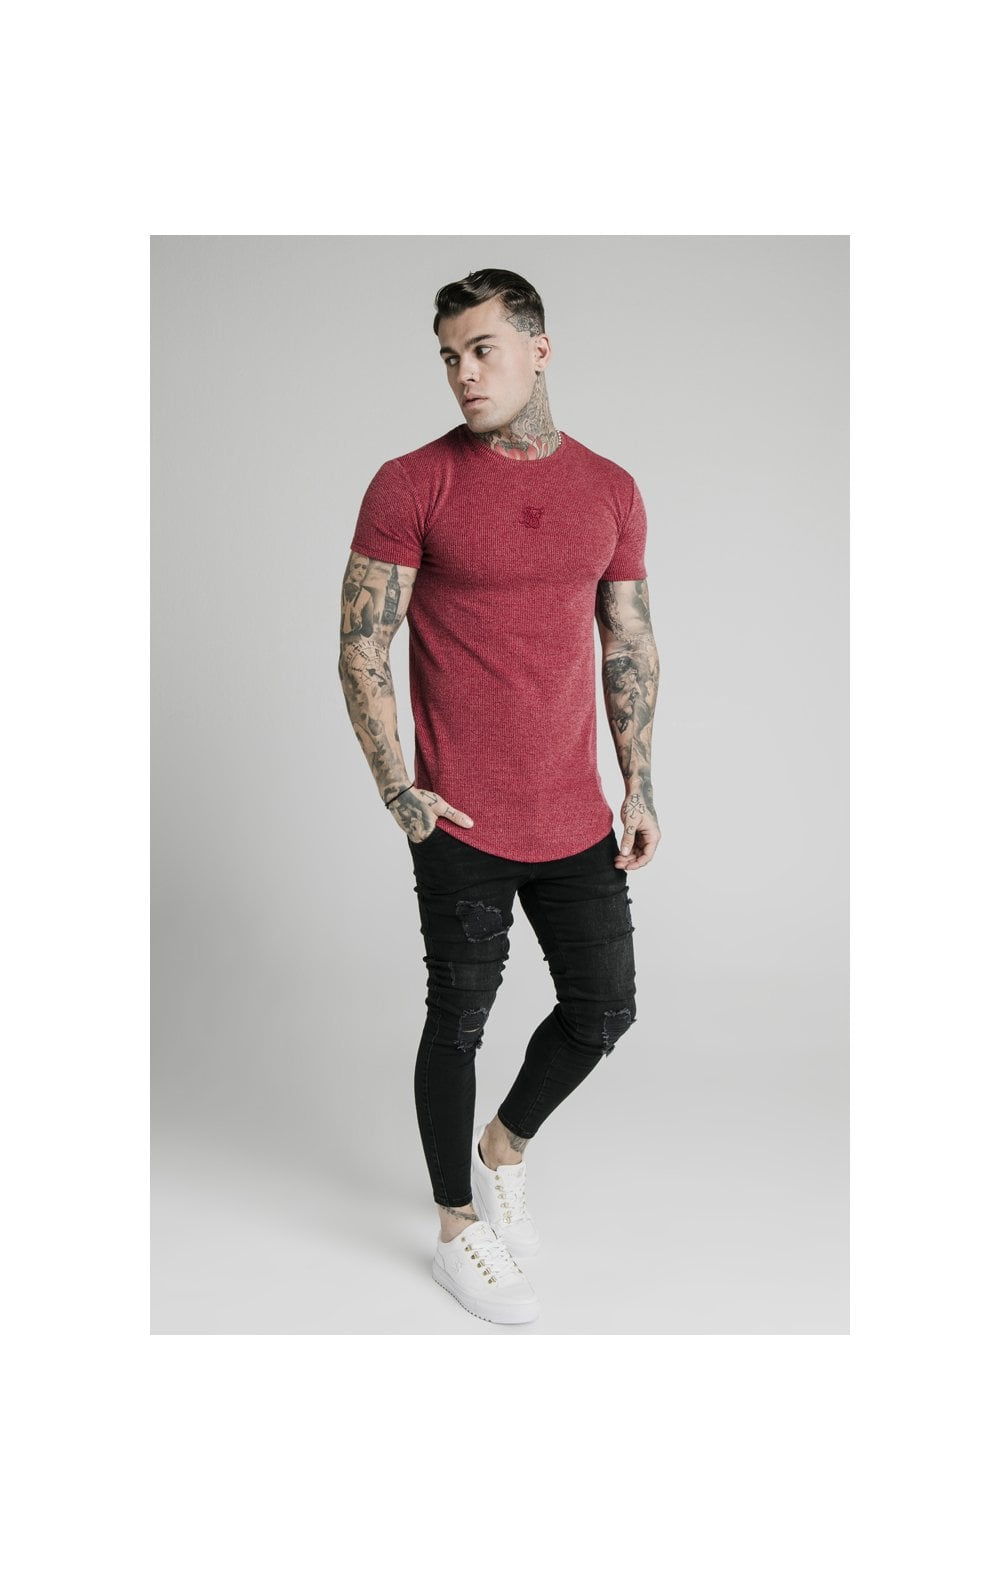 Load image into Gallery viewer, SikSilk Rib Knit Gym Tee - Red (3)